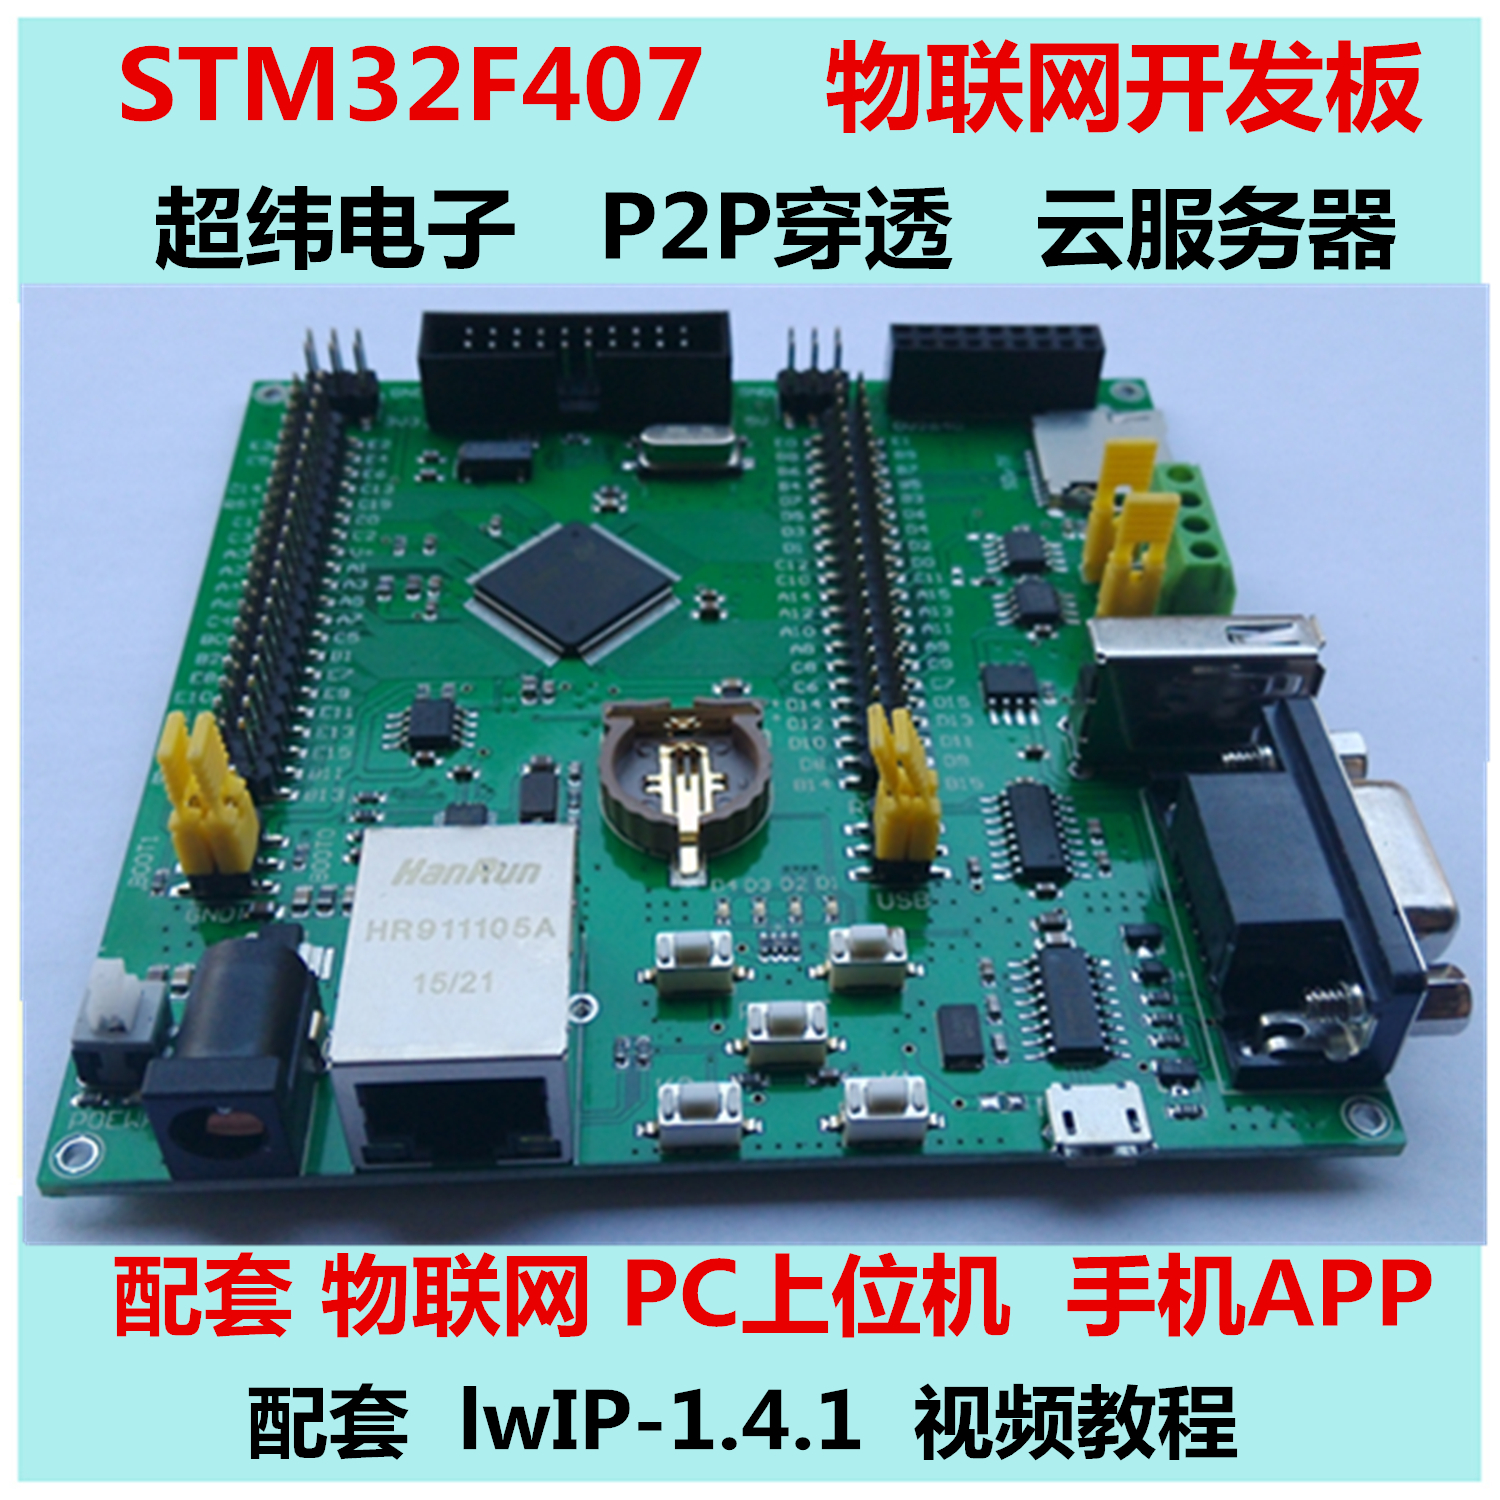 Internet of things video STM32F407 development board lwIP Ethernet /485/can/232/usb/sd card lua wifi nodemcu internet of things development board based on cp2102 esp8266